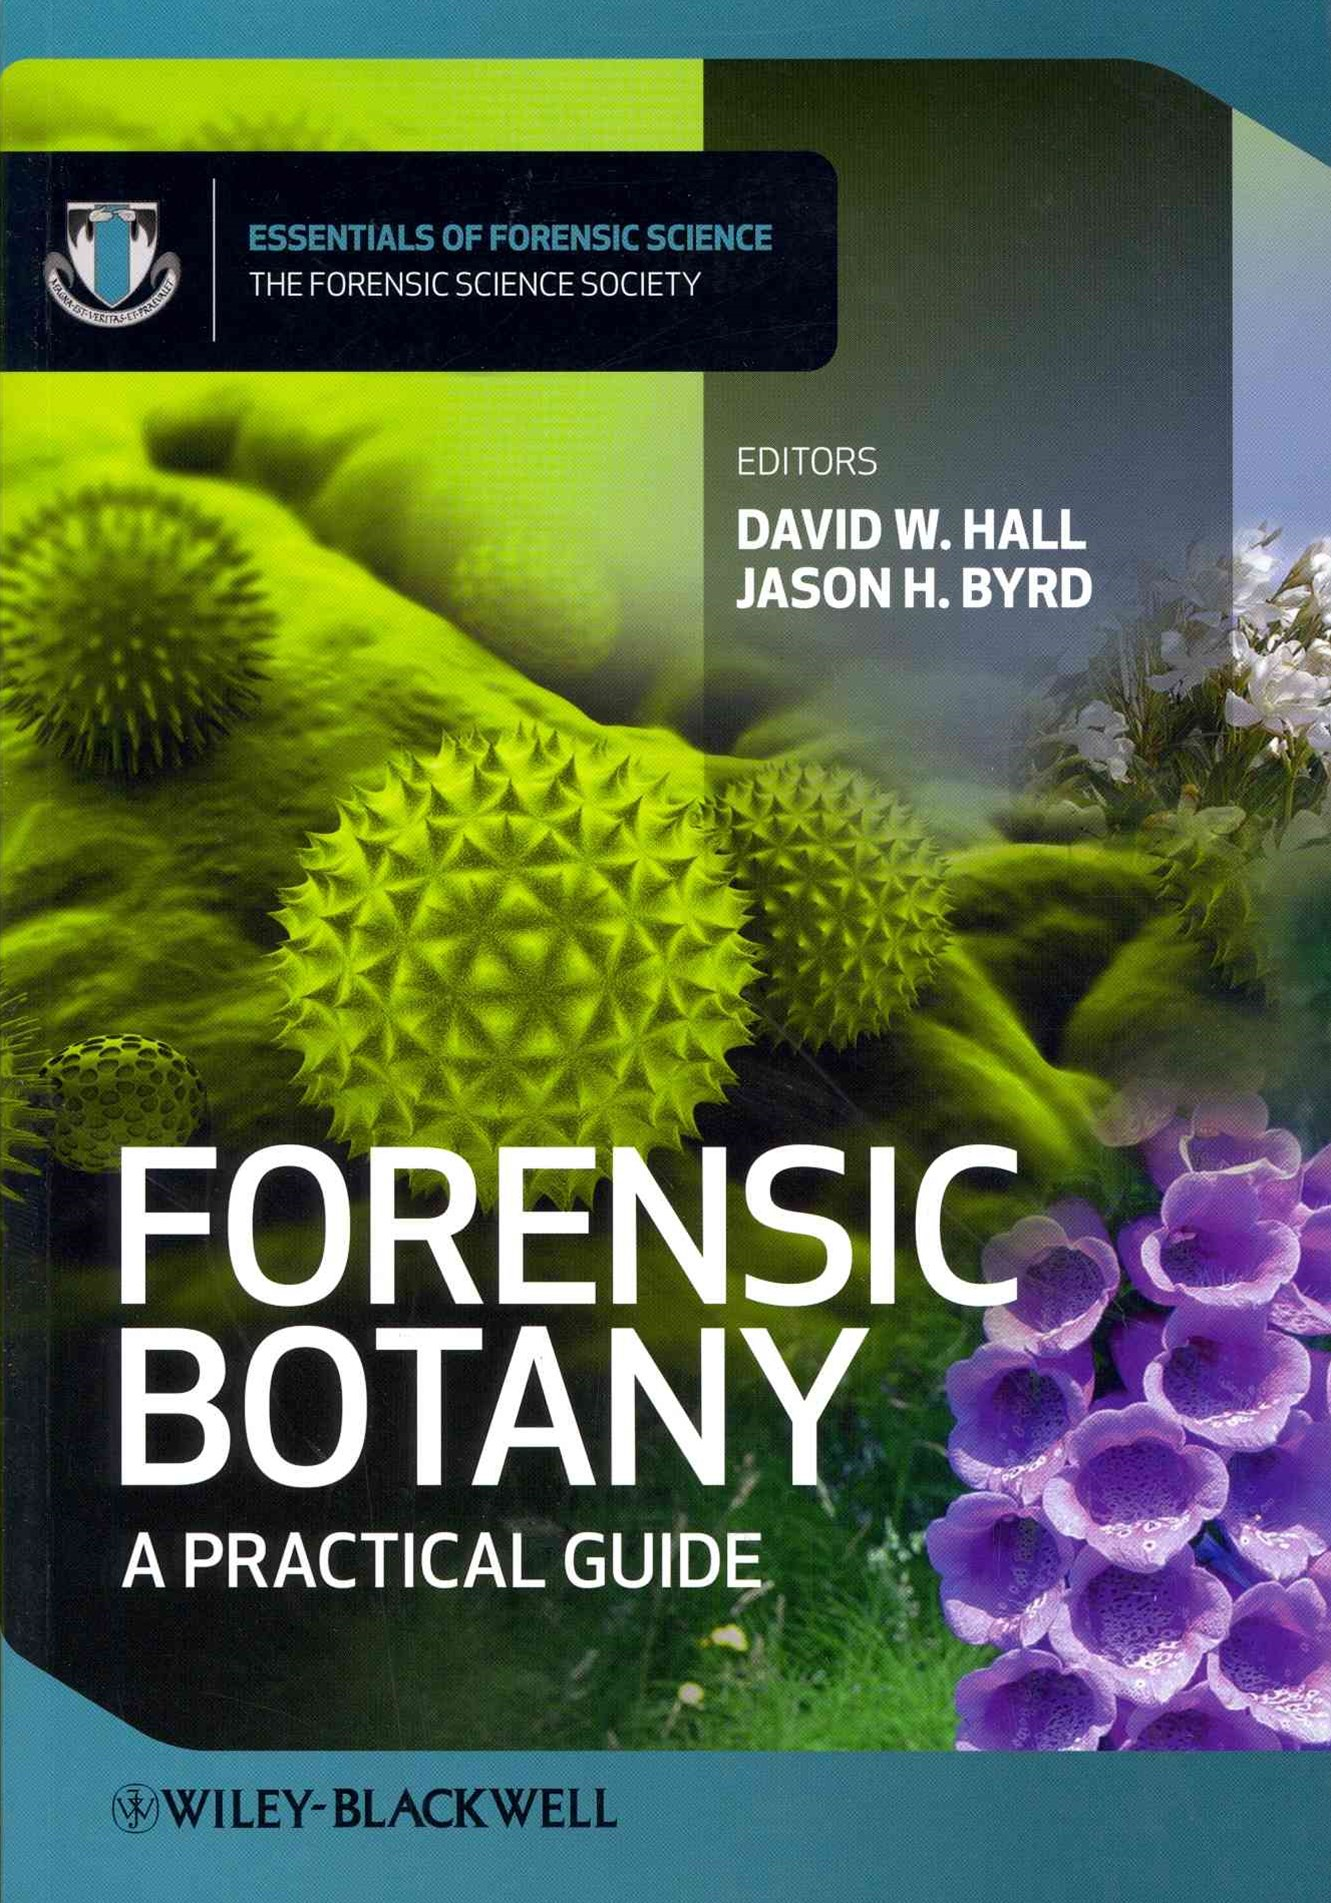 Forensic Botany - a Practical Guide